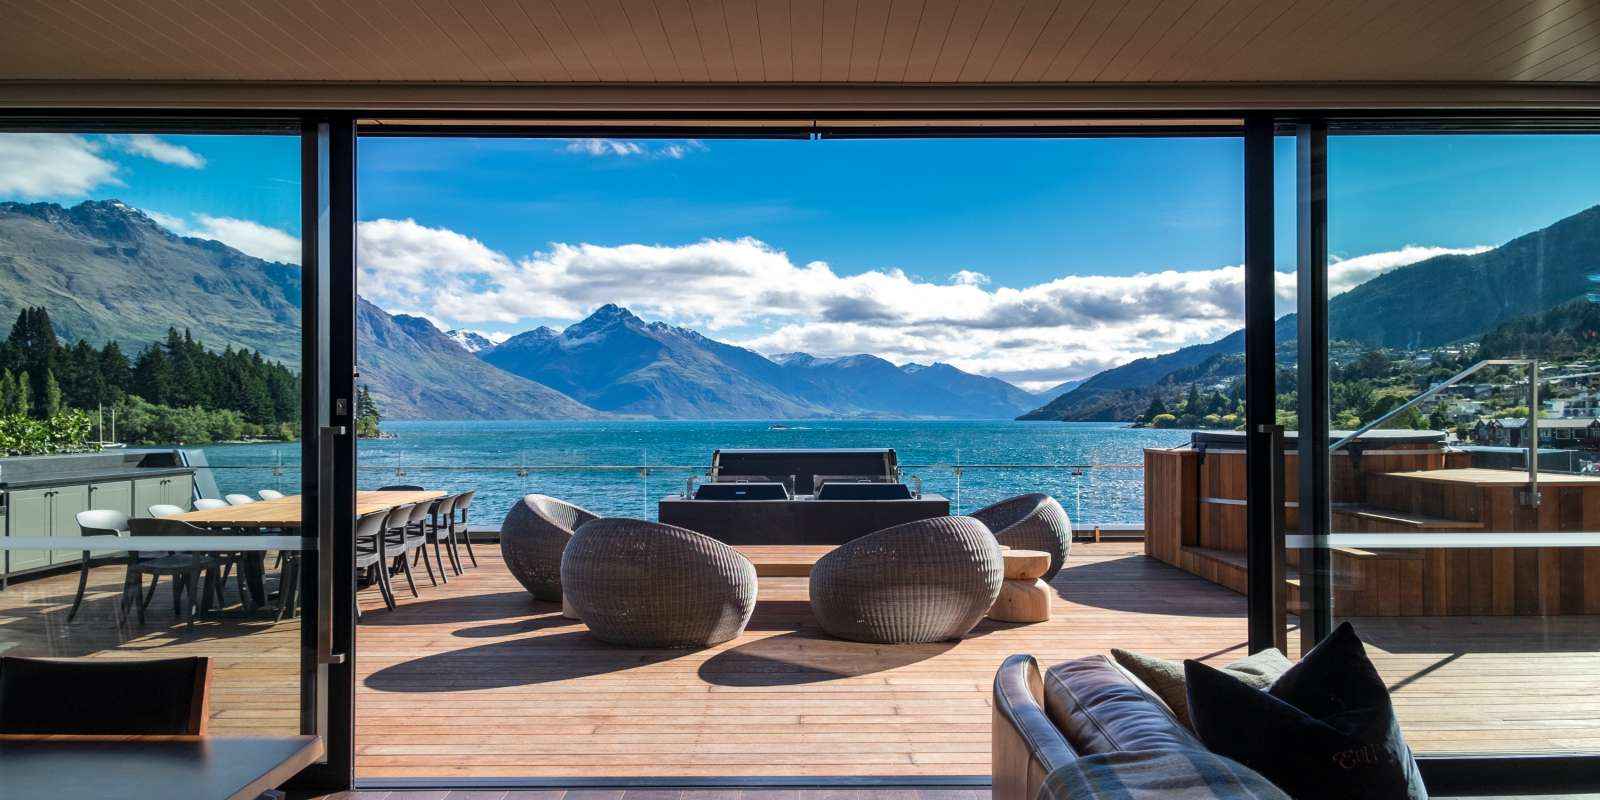 The Penthouse by Eichardts, Queenstown